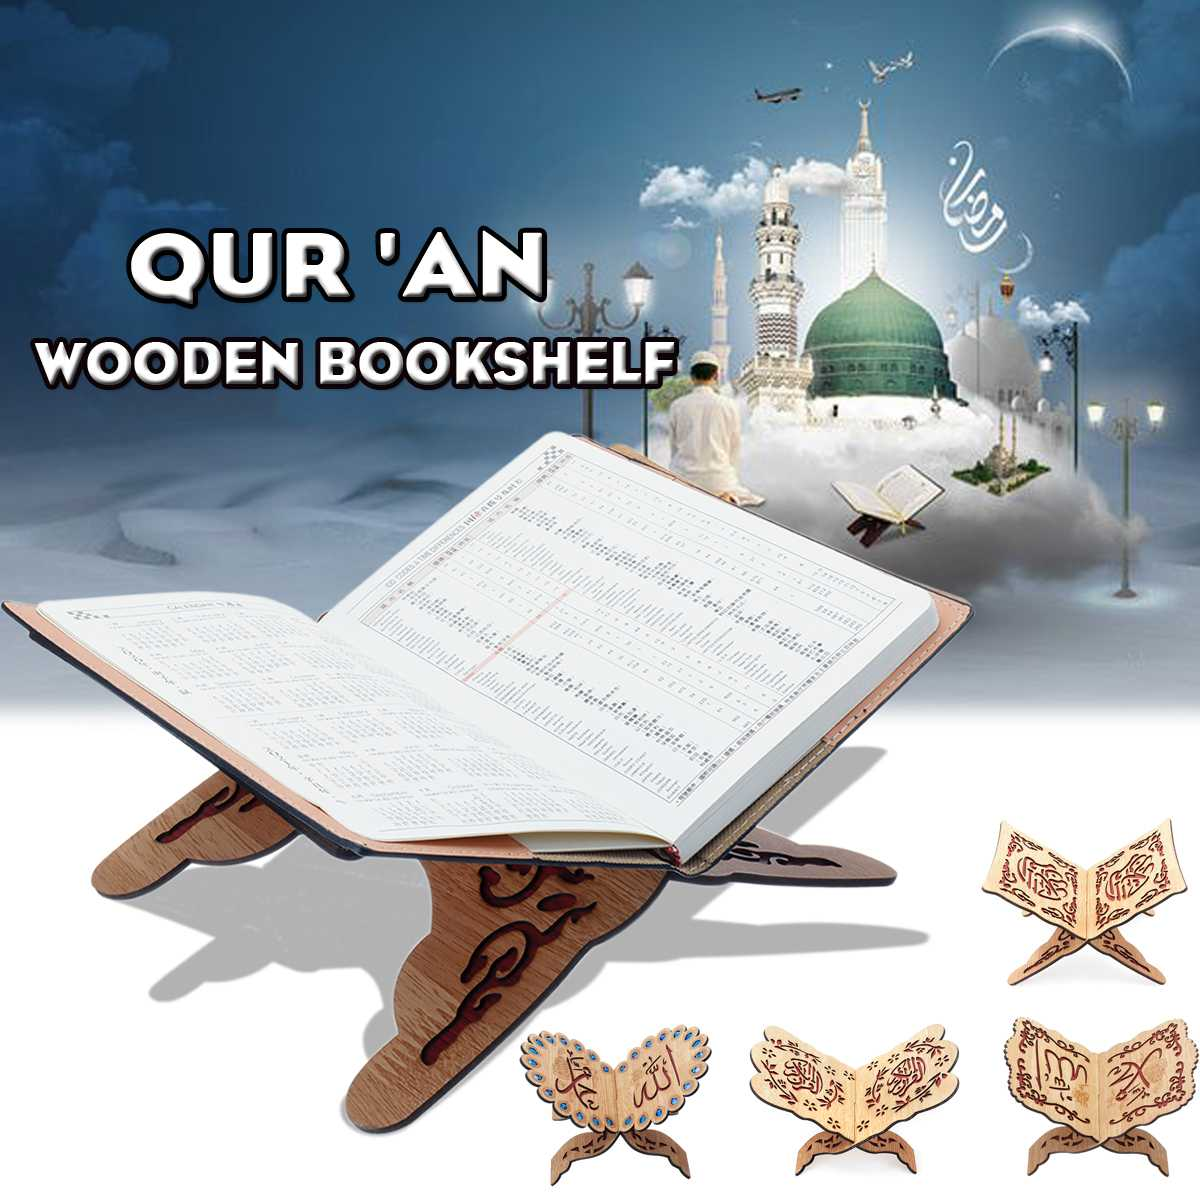 20x30cm Wooden Medium Bookshelf Eid Al-Fitr Bookshelf For Muslims Muslims Islamic The Hui Nationality Wooden Quran Bookshelf20x30cm Wooden Medium Bookshelf Eid Al-Fitr Bookshelf For Muslims Muslims Islamic The Hui Nationality Wooden Quran Bookshelf